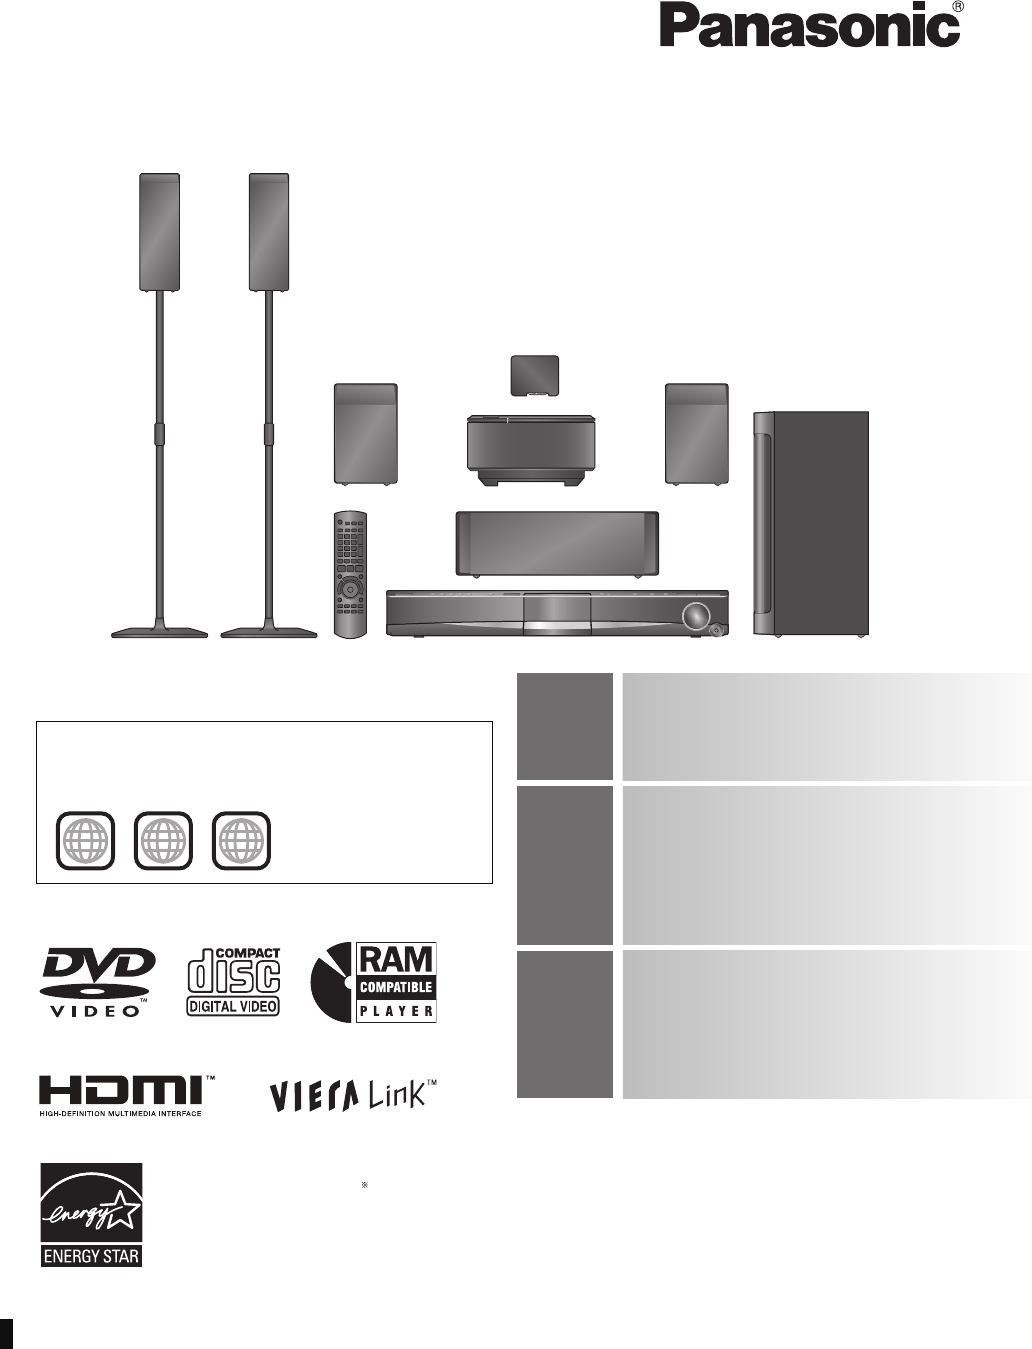 panasonic dvd player sc pt956 user guide manualsonline com rh tv manualsonline com panasonic sa-pt956 manual Panasonic Sound Systems for Homes